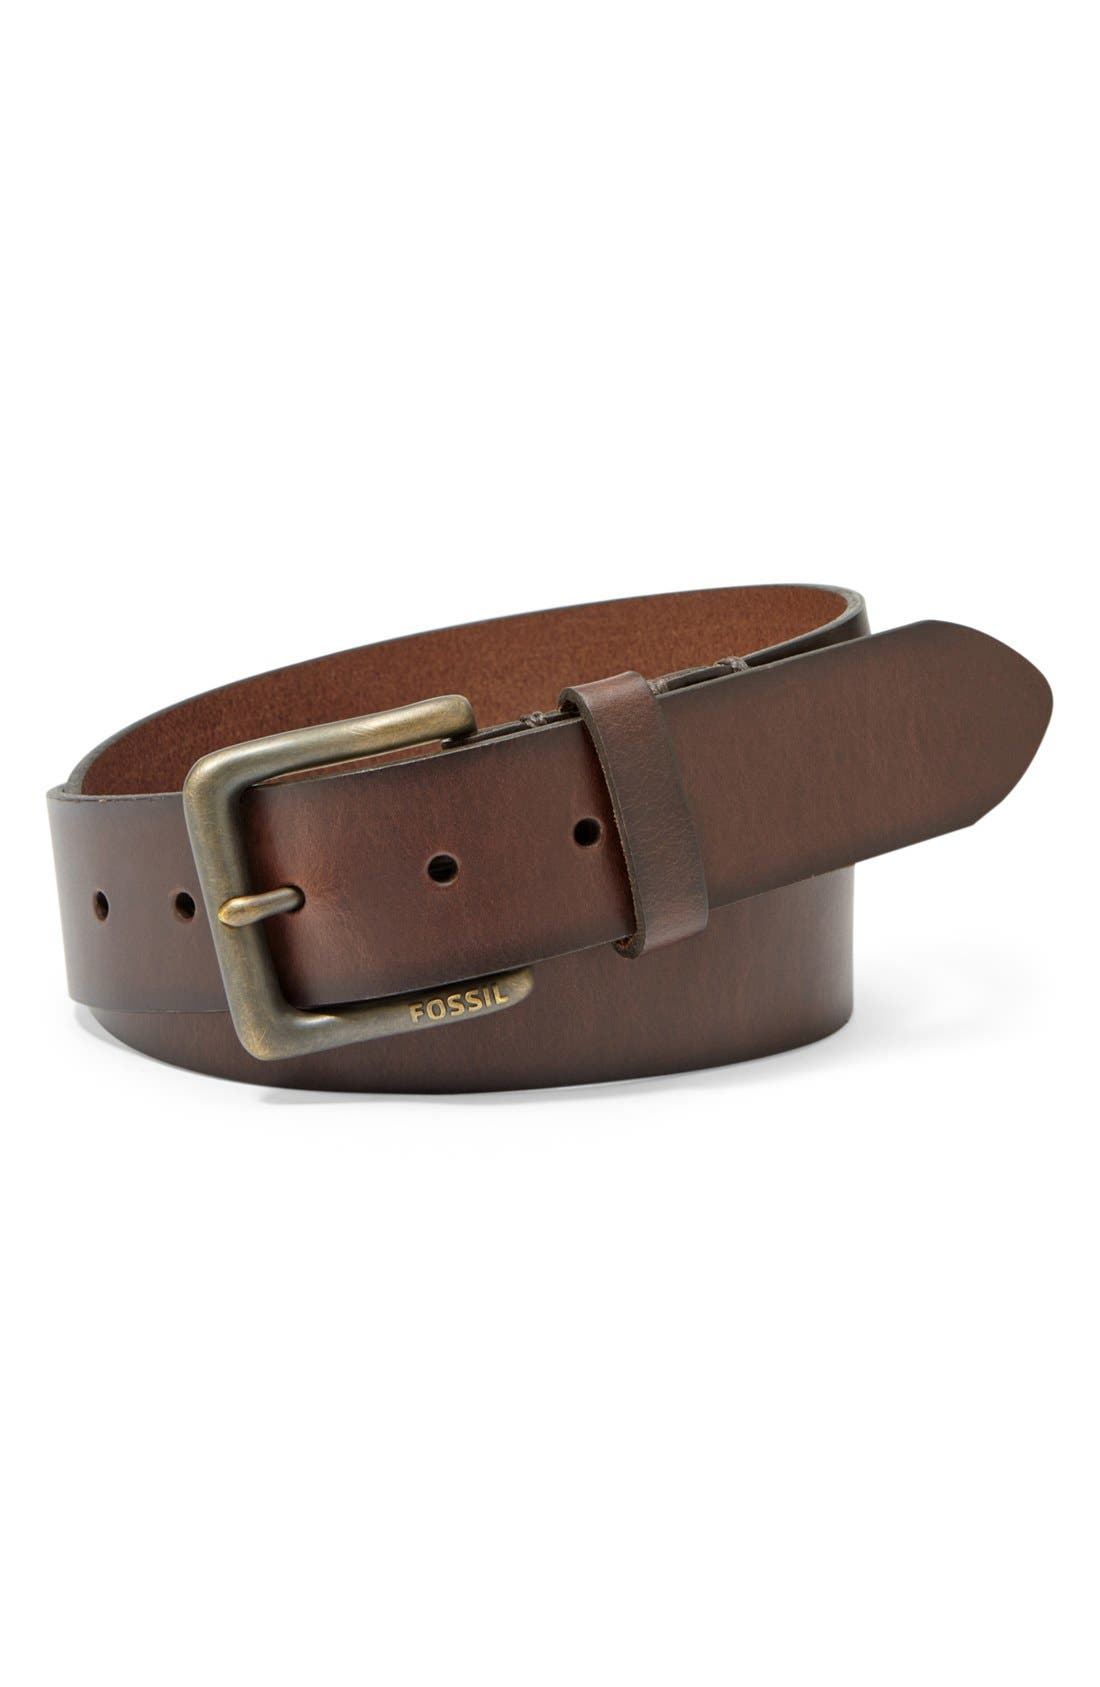 Alternate Image 1 Selected - Fossil 'Artie' Belt